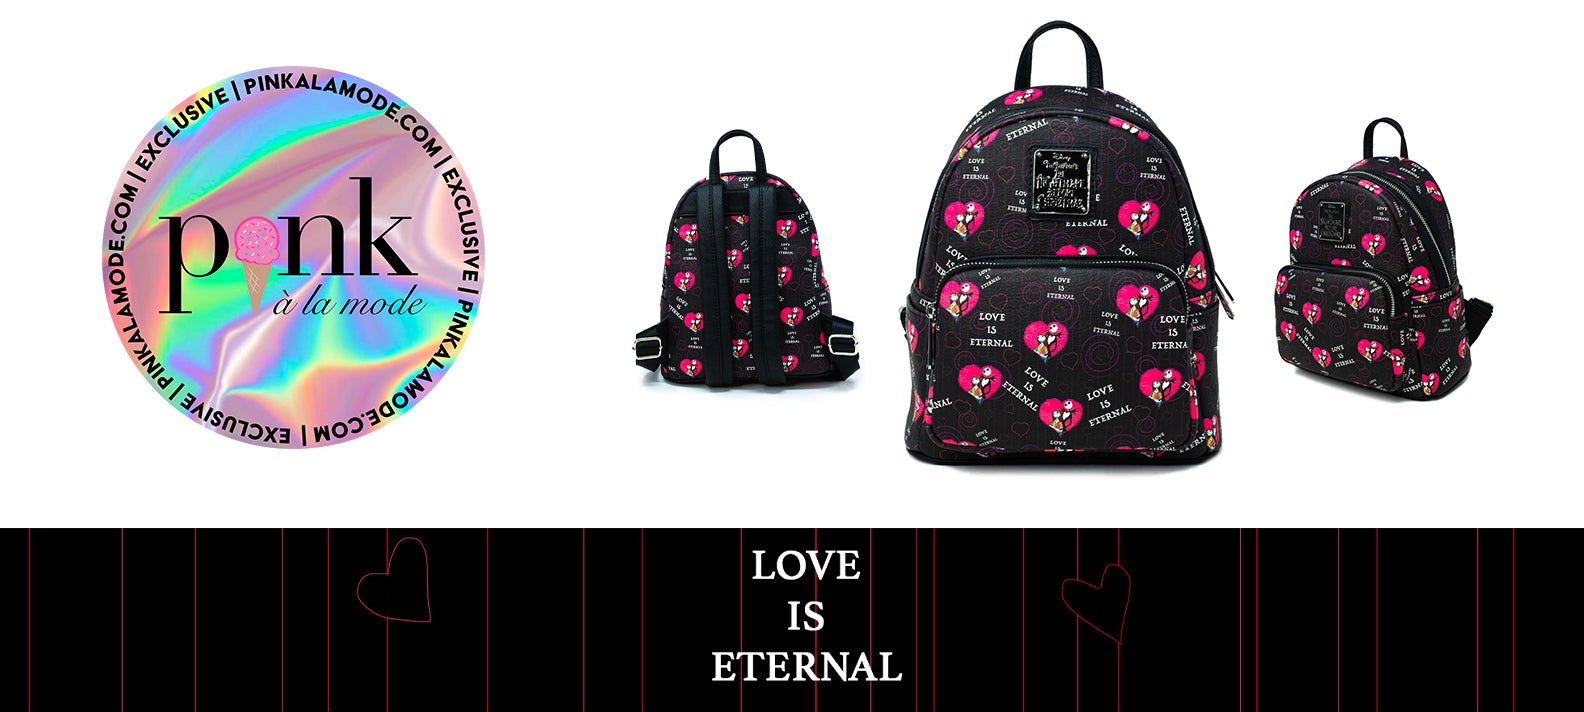 Our First Exclusive - Love Is Eternal Mini Backpack